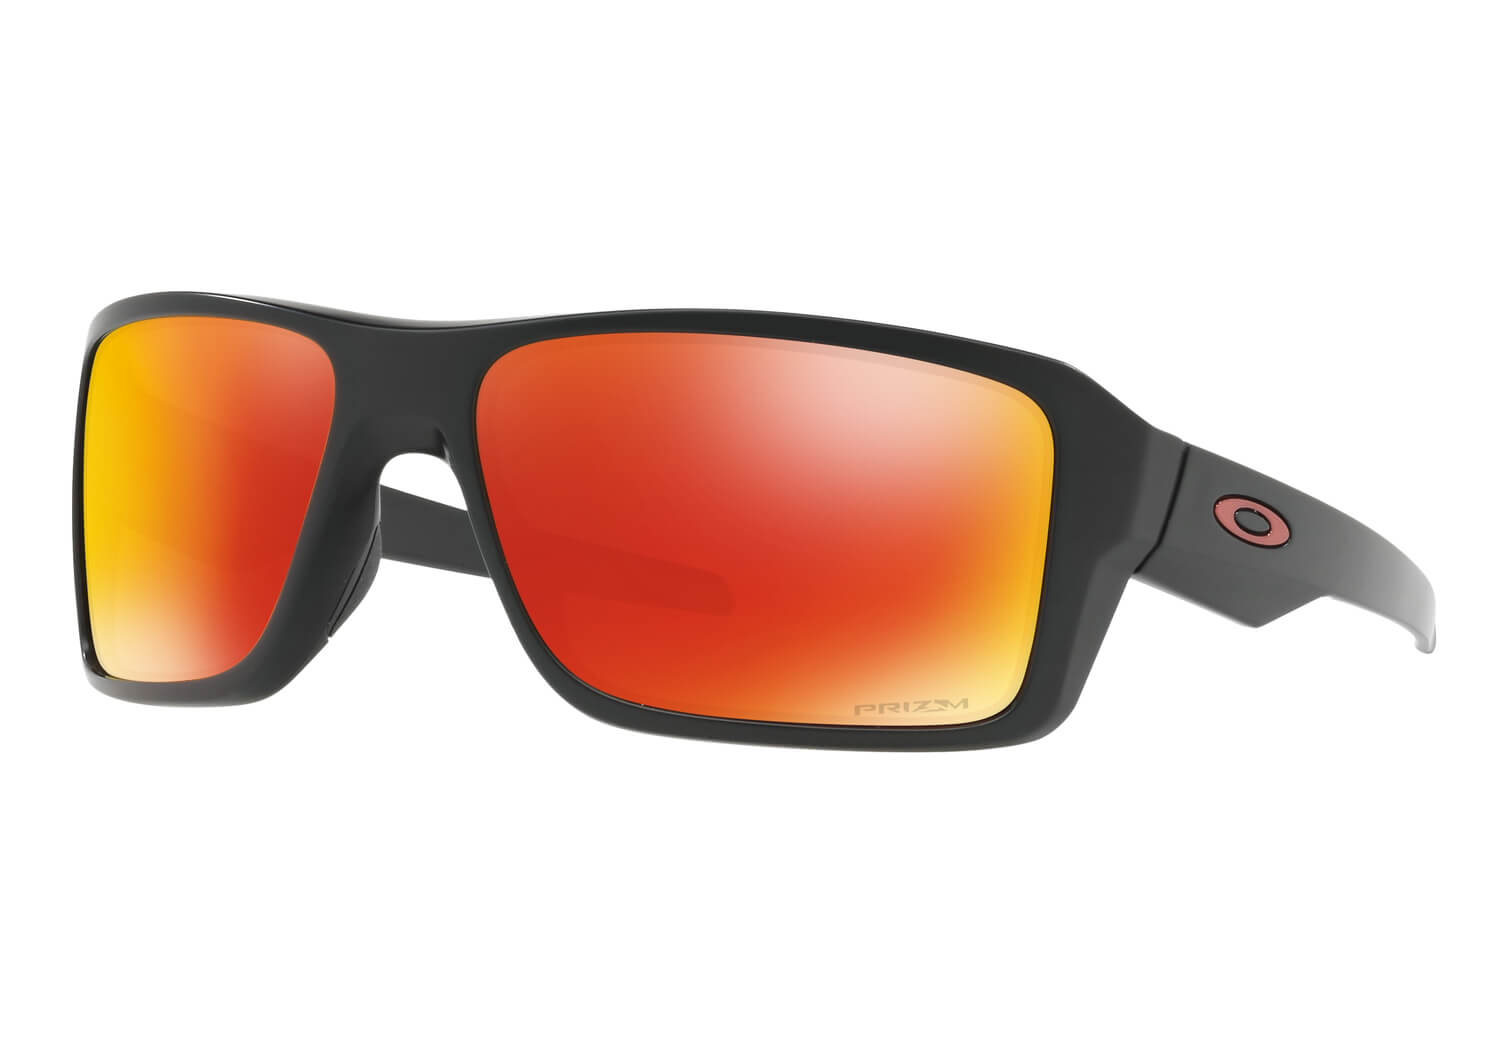 358b787375 Oakley Frames For Large Heads « One More Soul